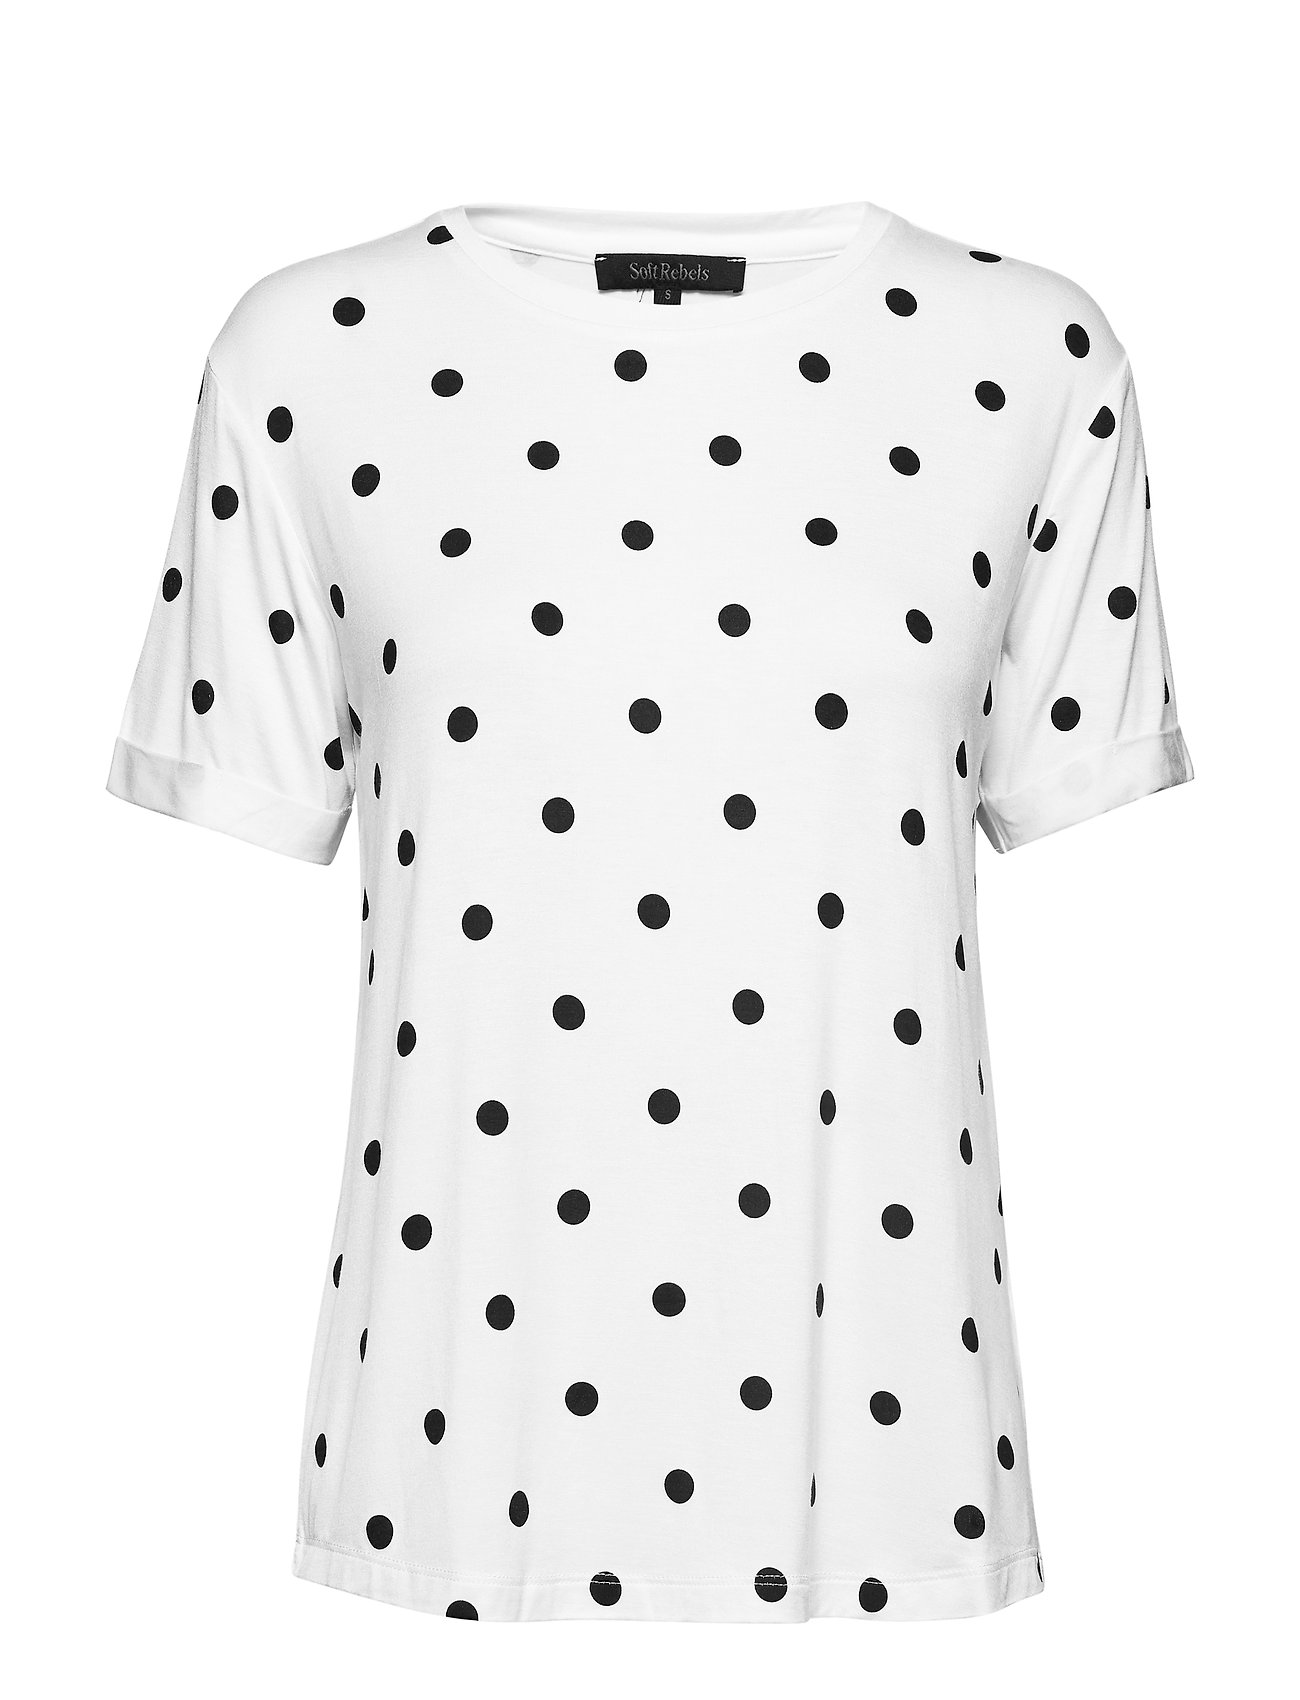 shirtsnow Rebels Dotted T WhiteSoft WhiteOff w0PN8nkZOX